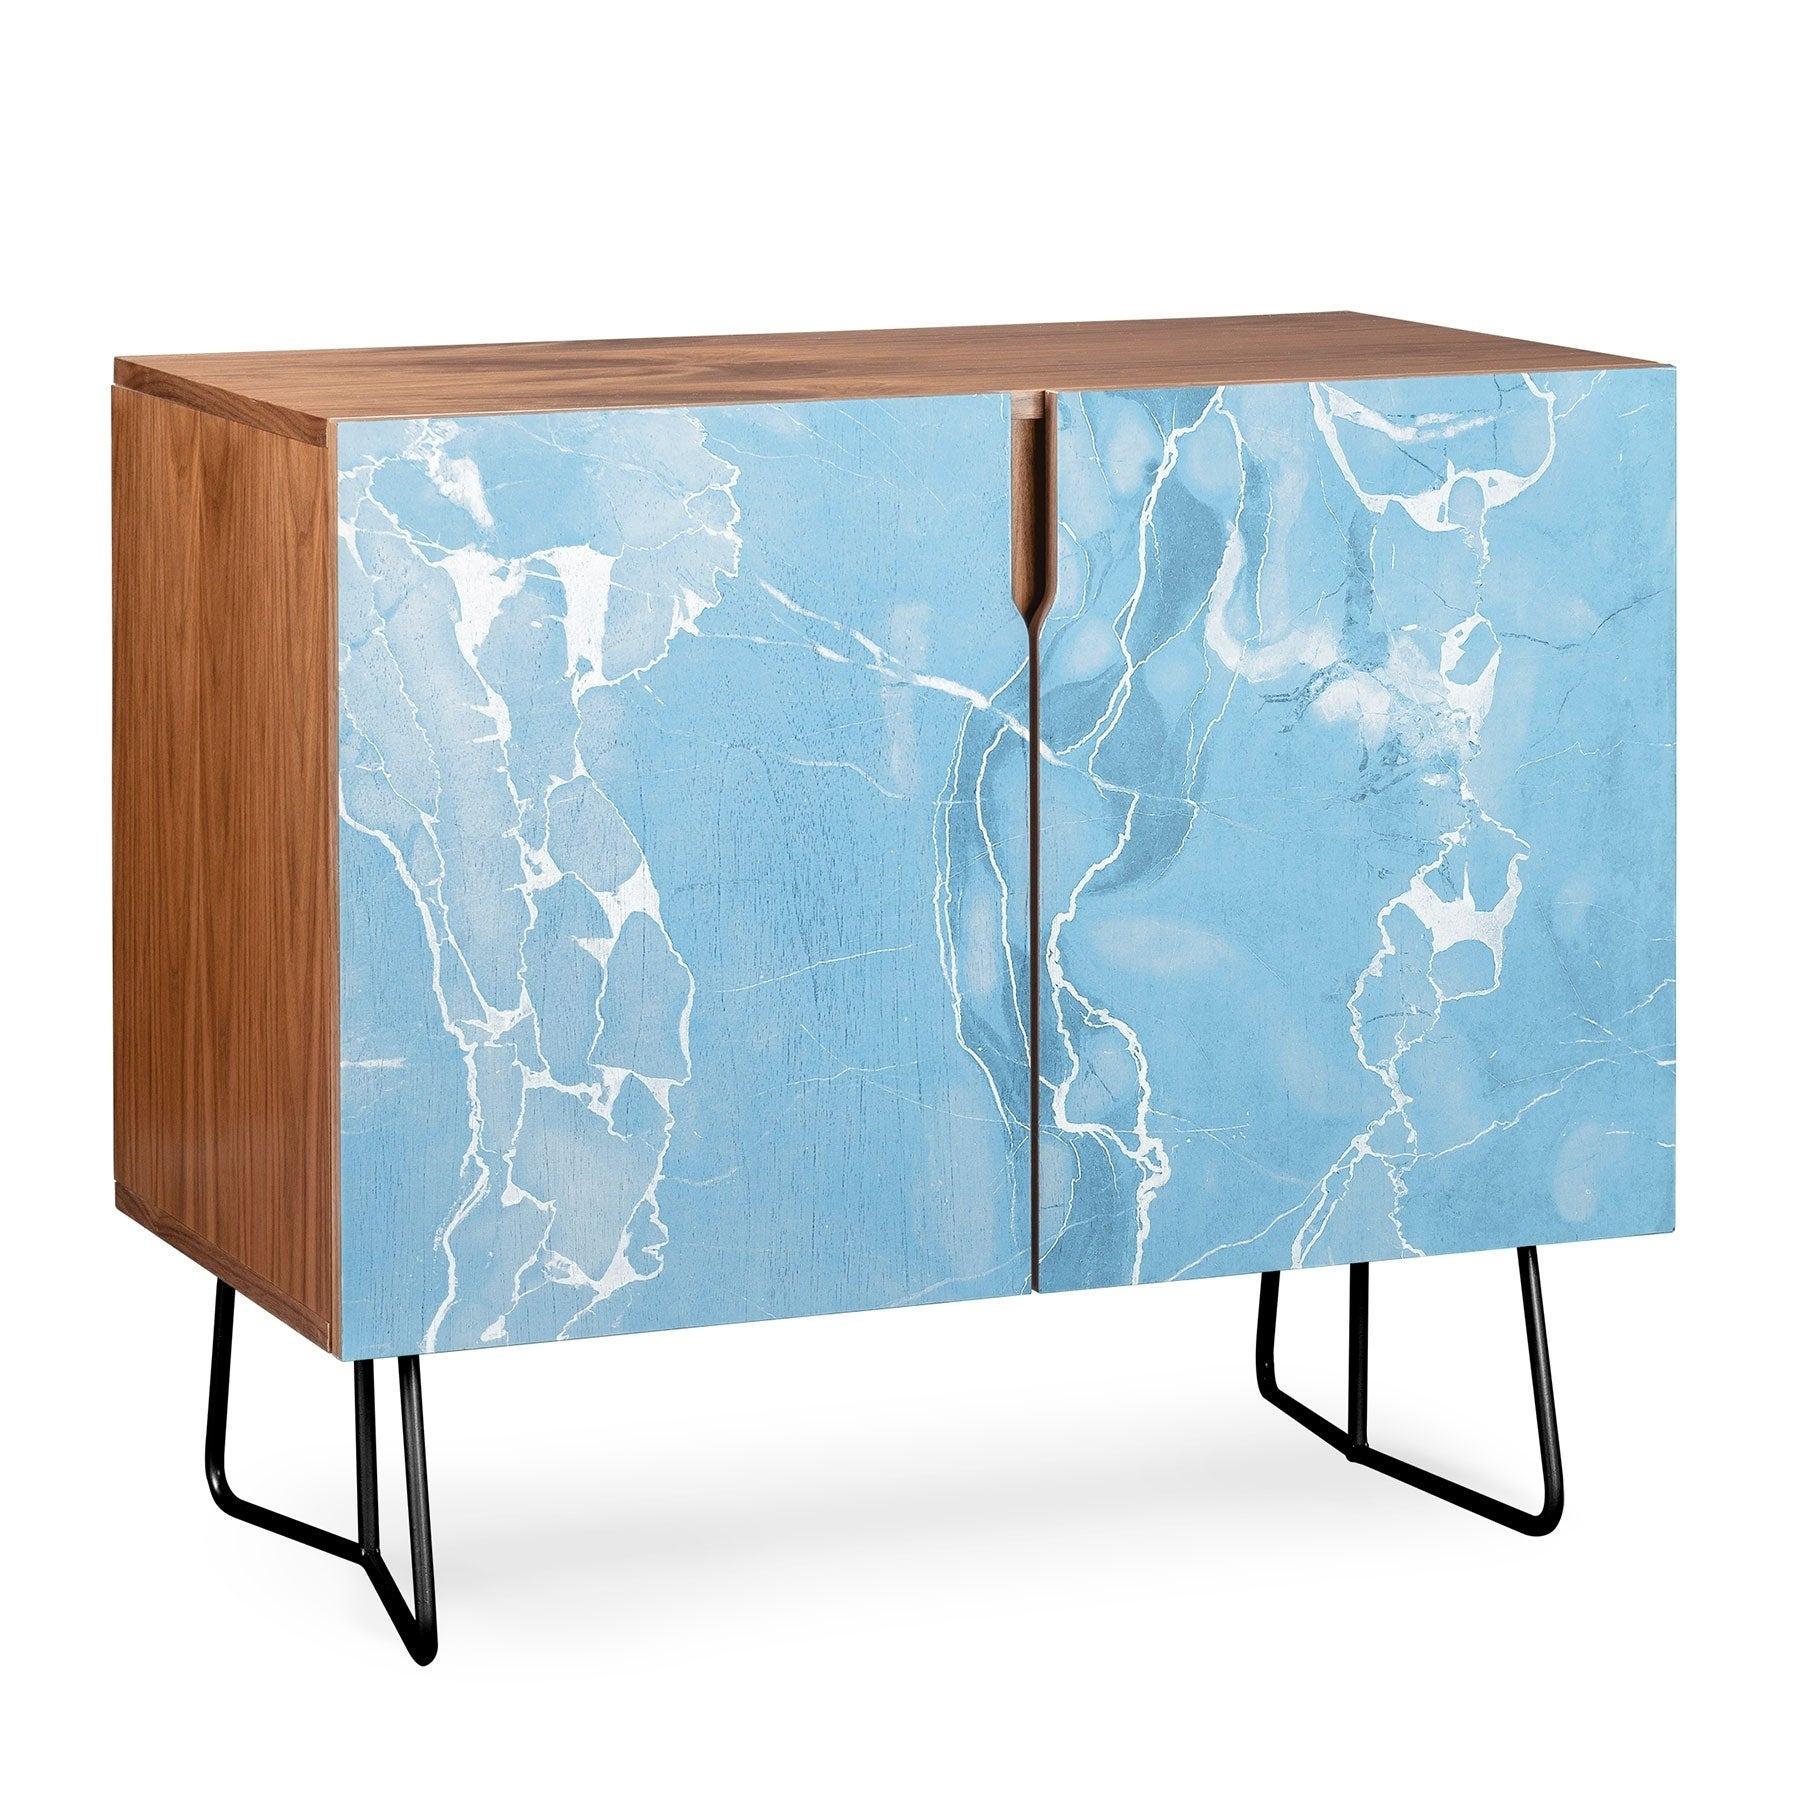 Deny Designs Blue Sky Marble Credenza (birch Or Walnut, 2 Leg Options) Intended For Ocean Marble Credenzas (View 3 of 30)